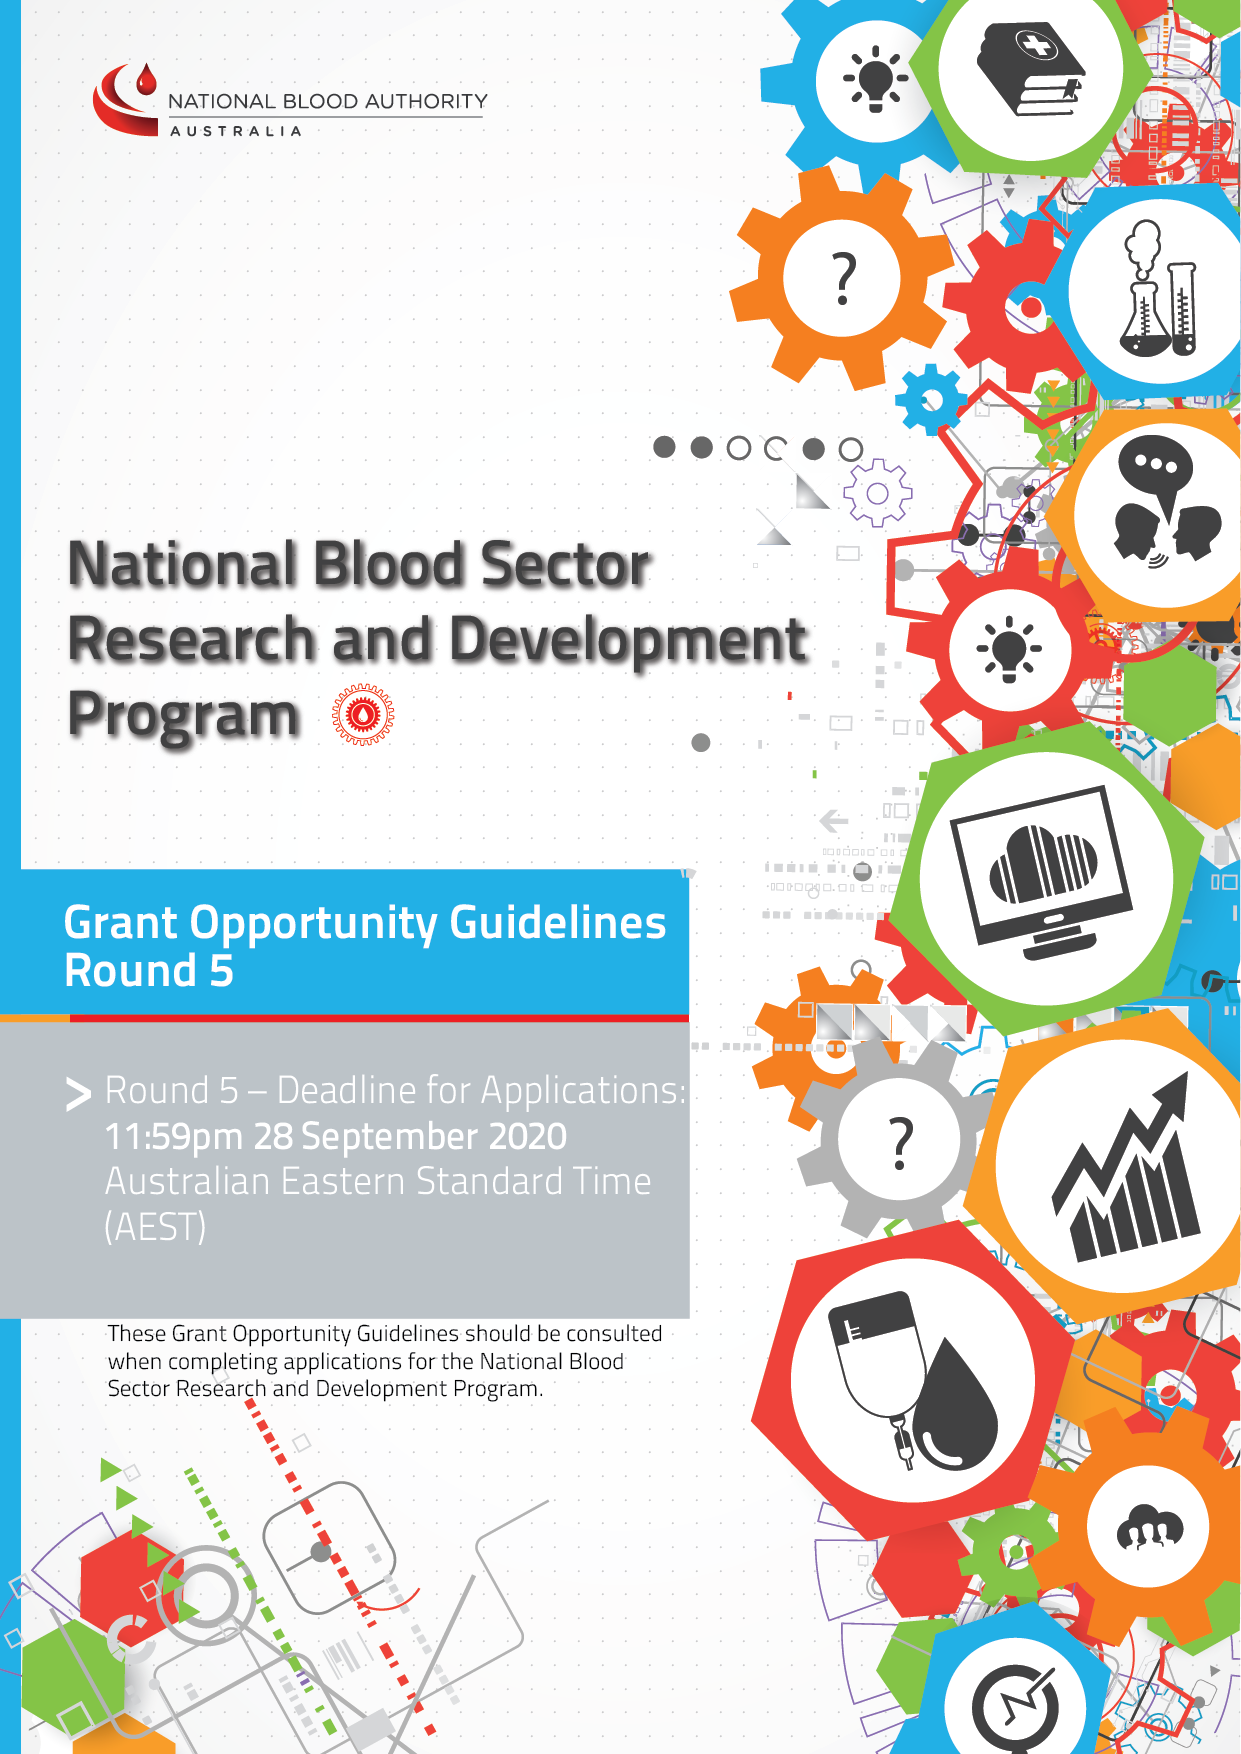 Round 5 Grant Opportunity Guidelines